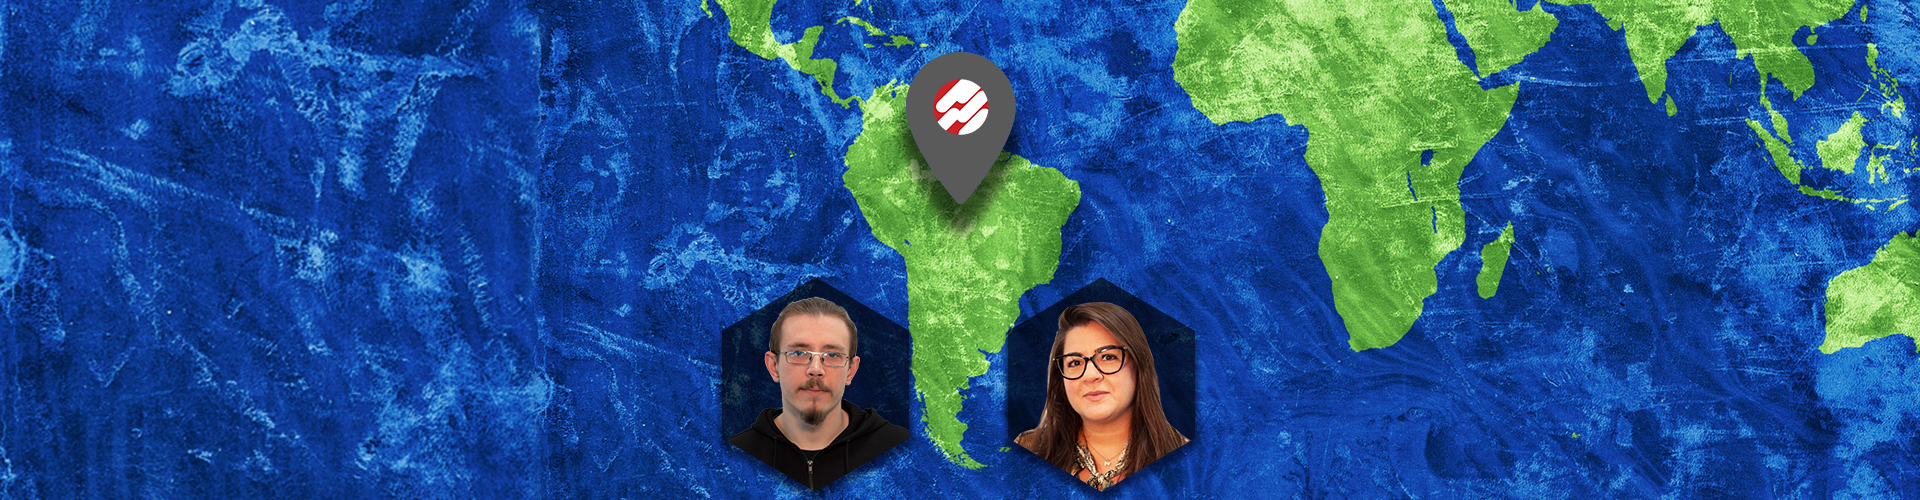 Press Release: PageSuite set to make an international impact with further expansion into South America